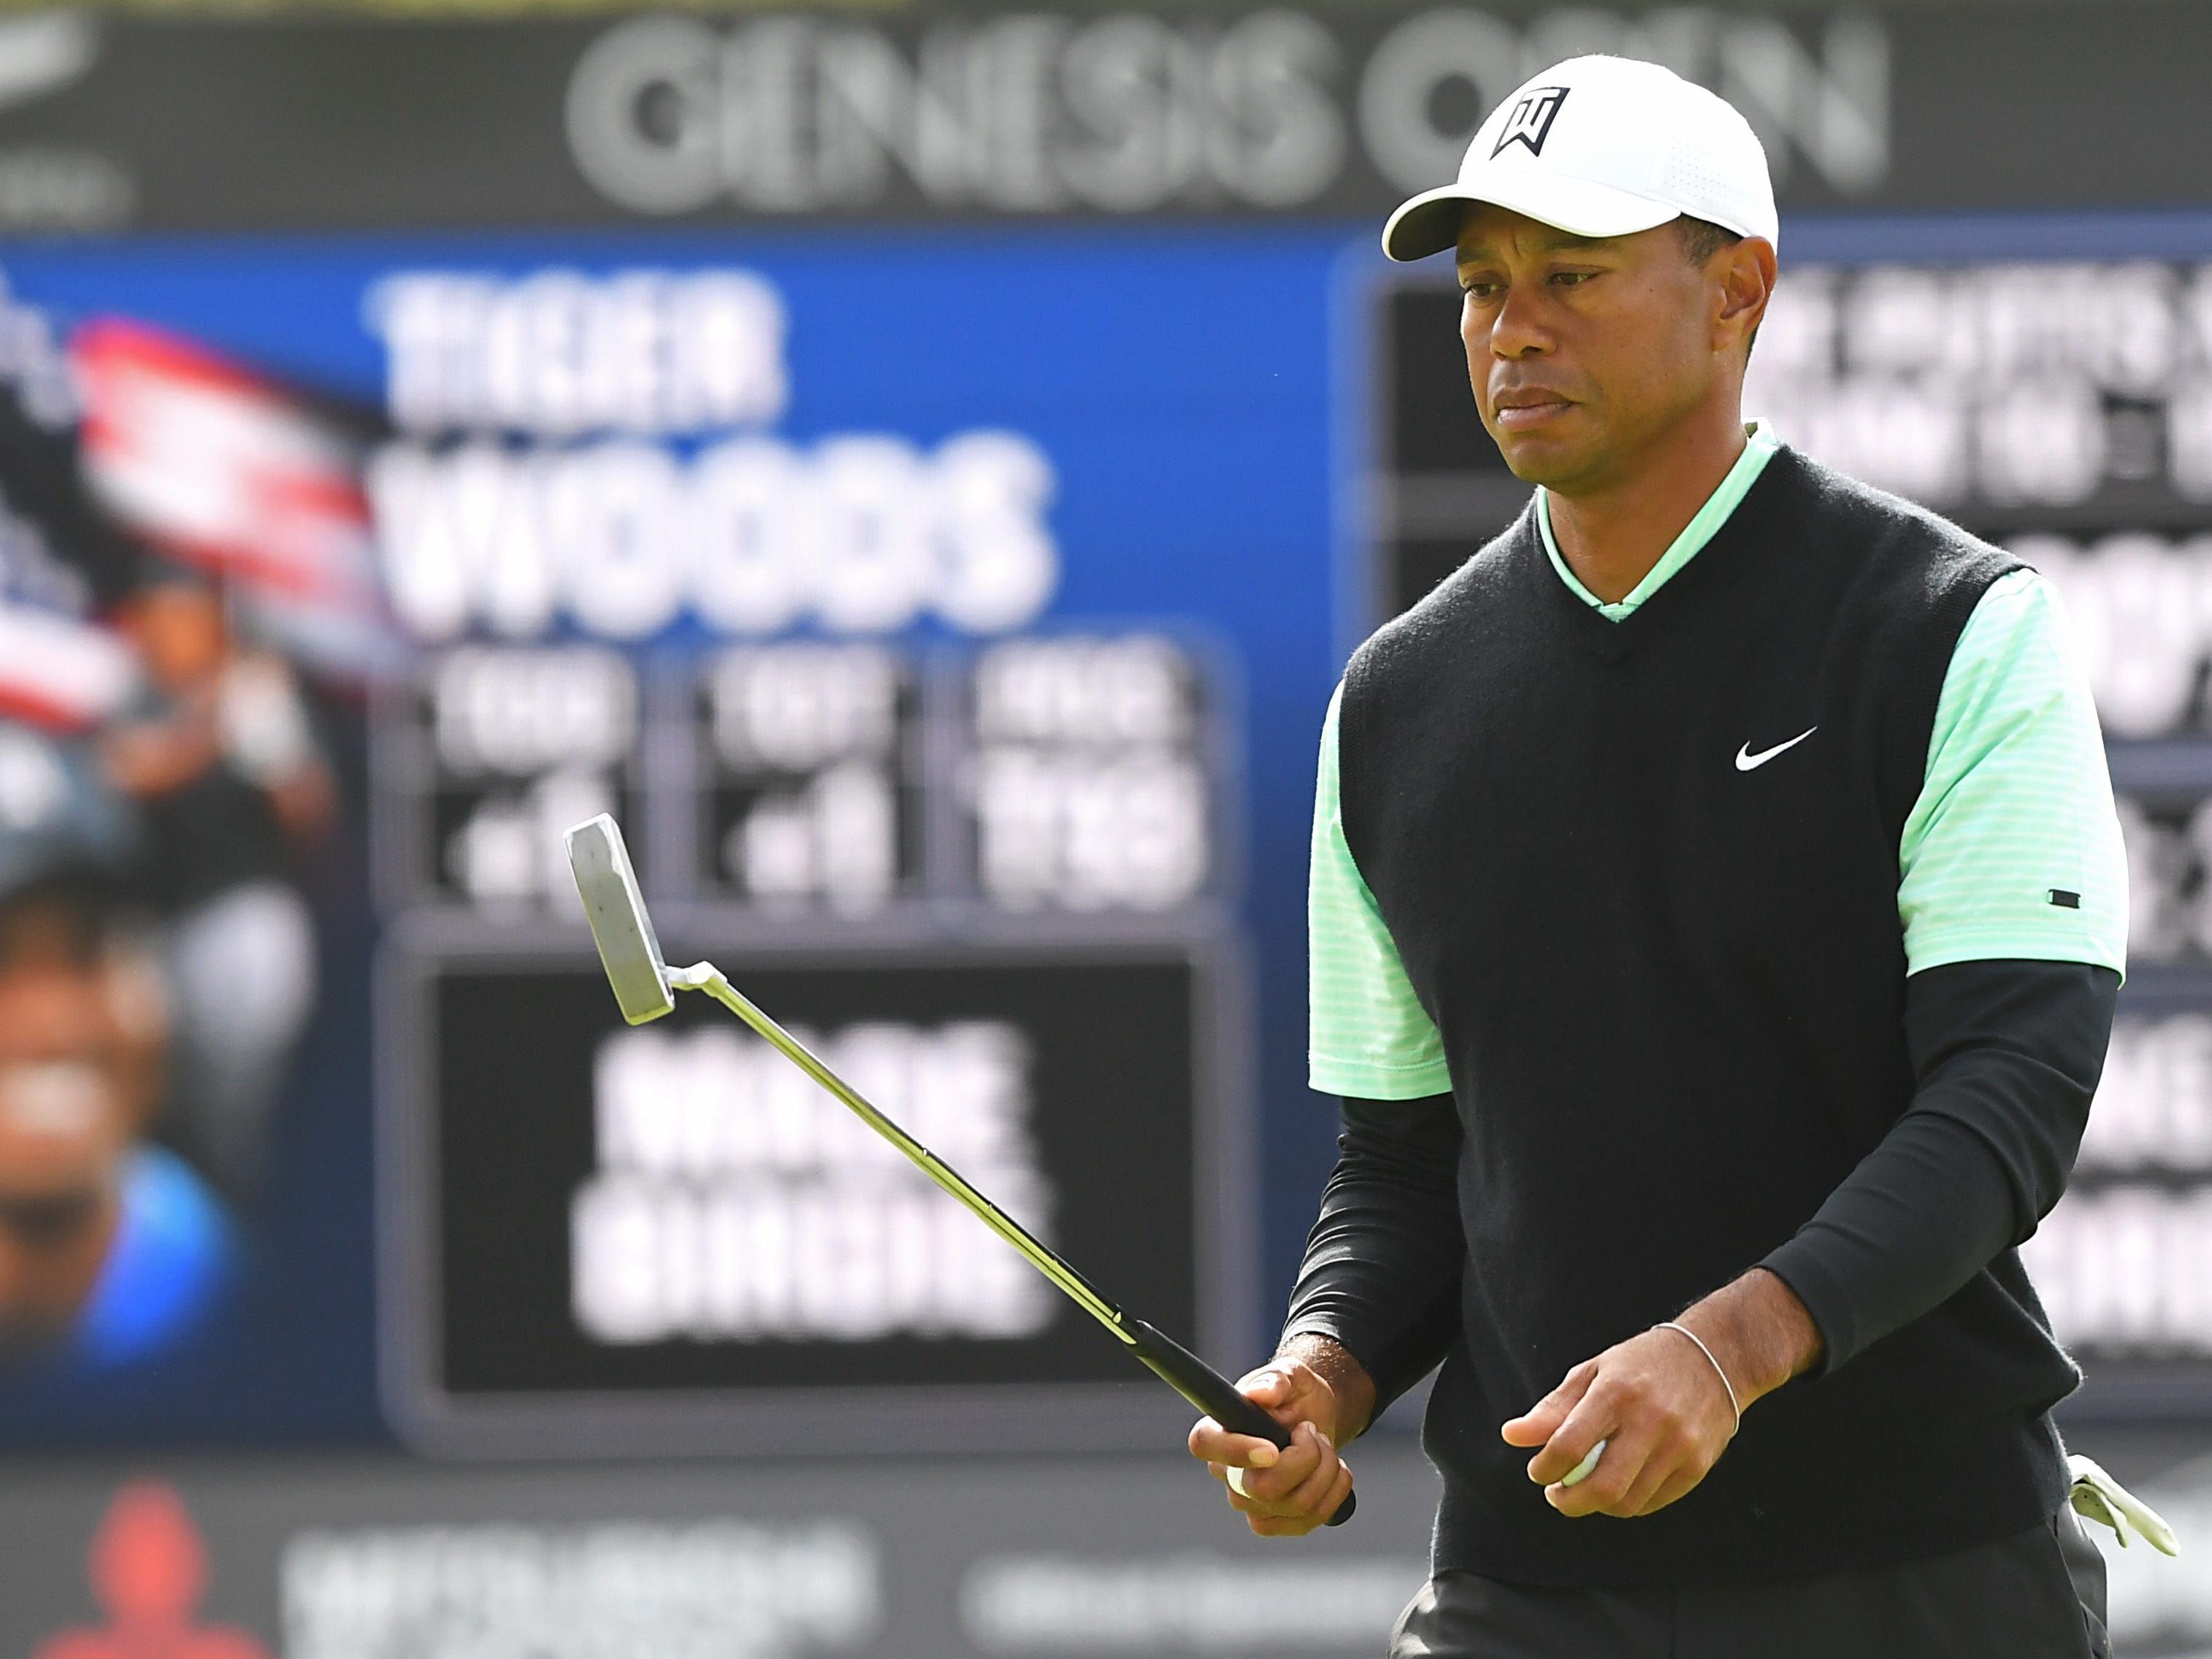 genesis open  tiger woods continues twisted relationship